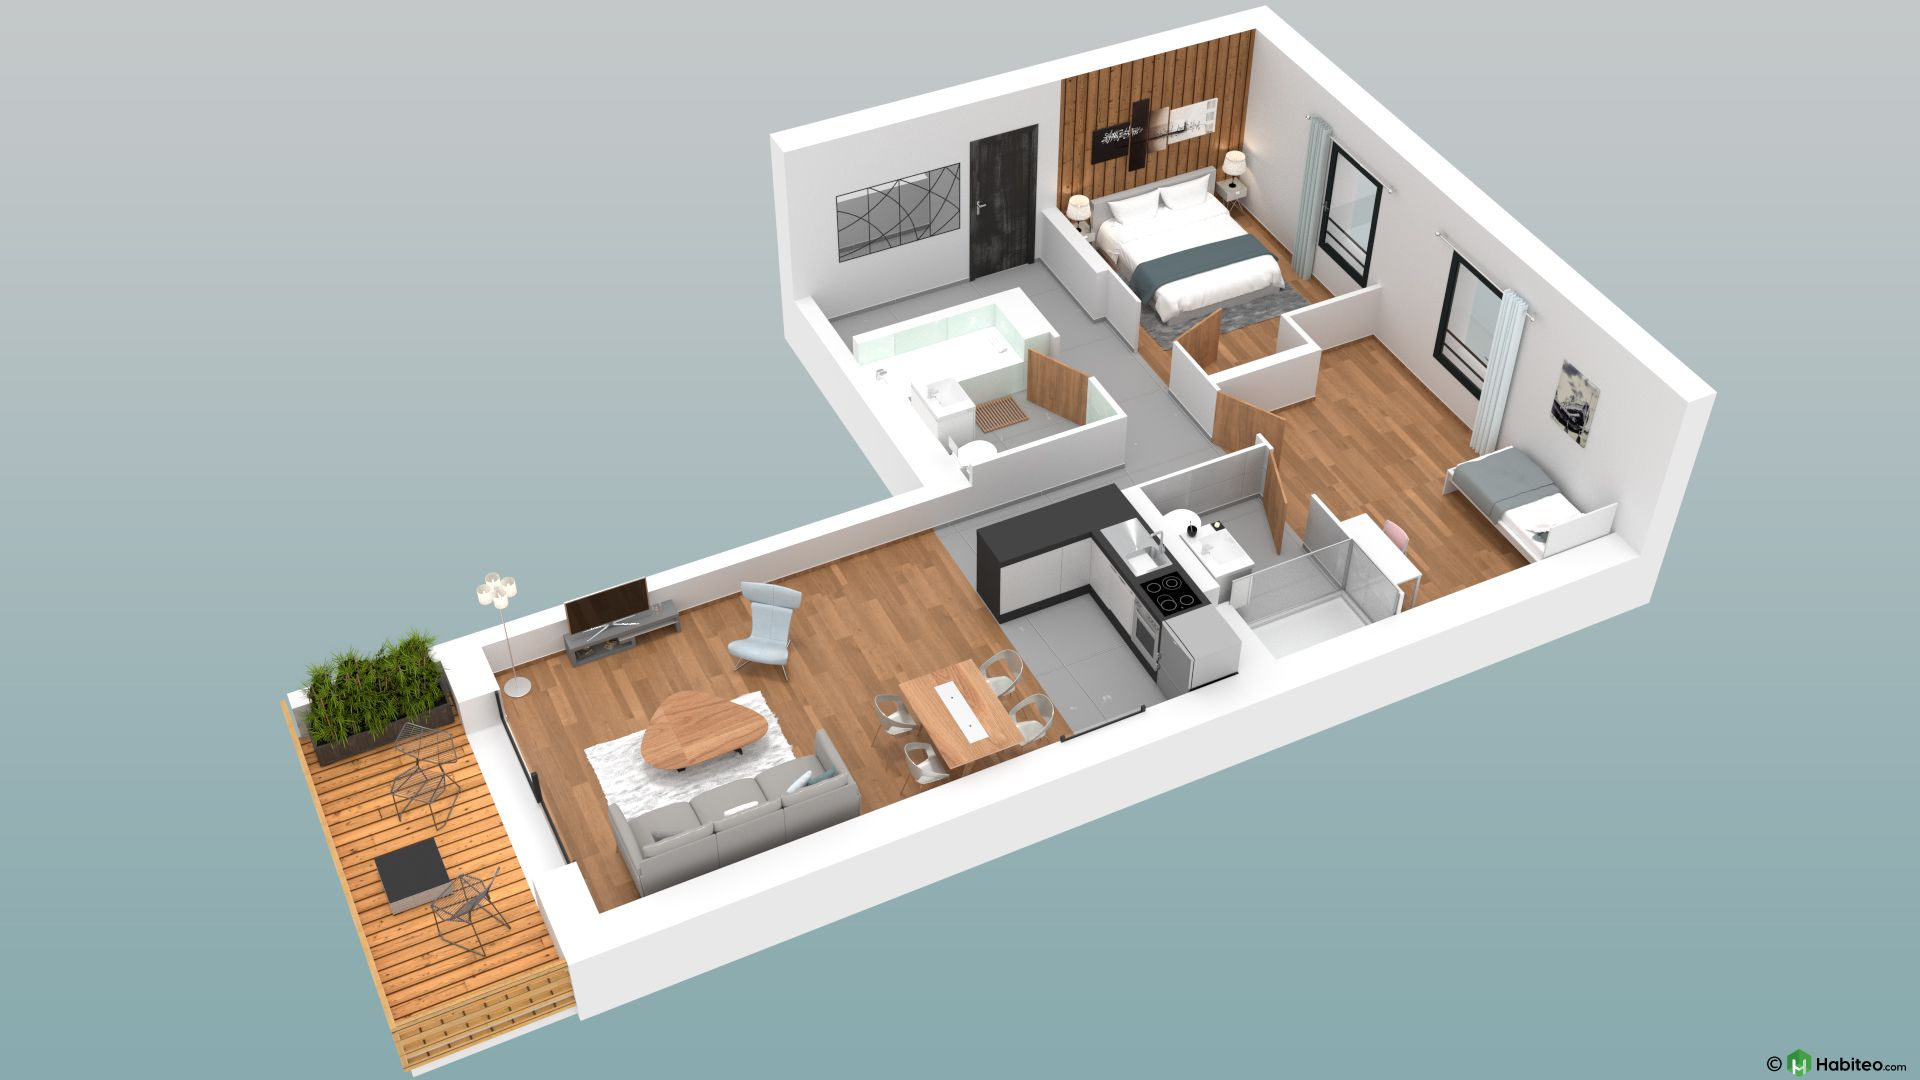 3-ROOM OF 60.90 SQM NEW BUILD